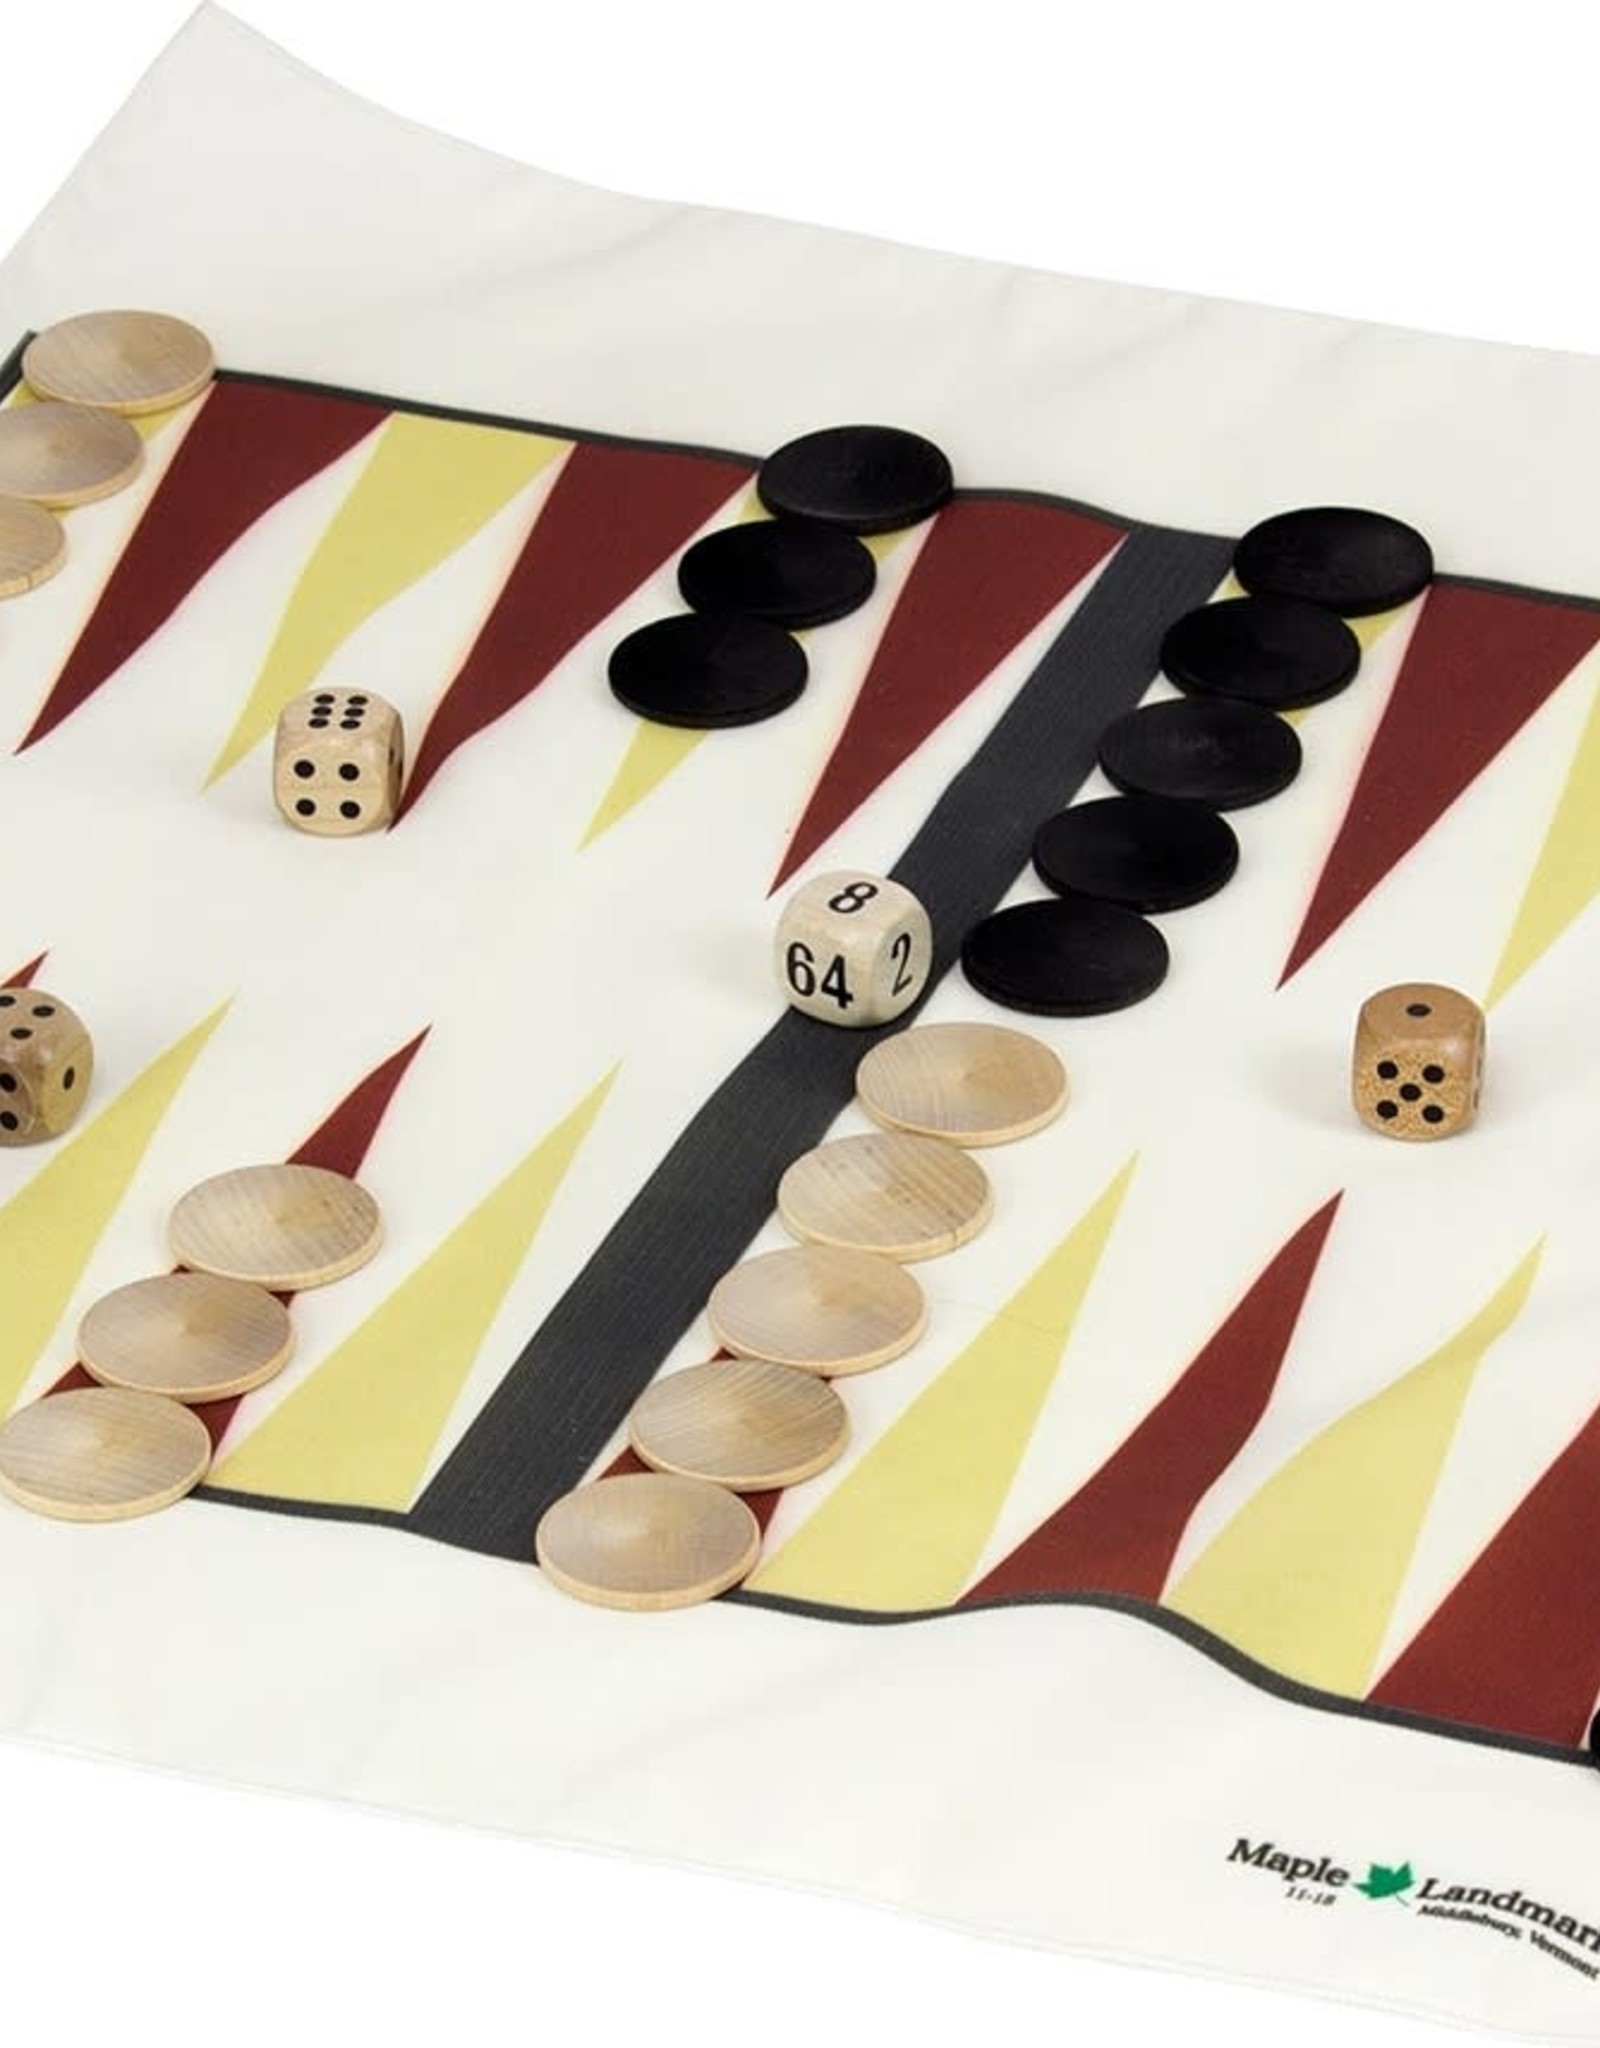 Maple Landmark Backgammon Set Travel Canvas